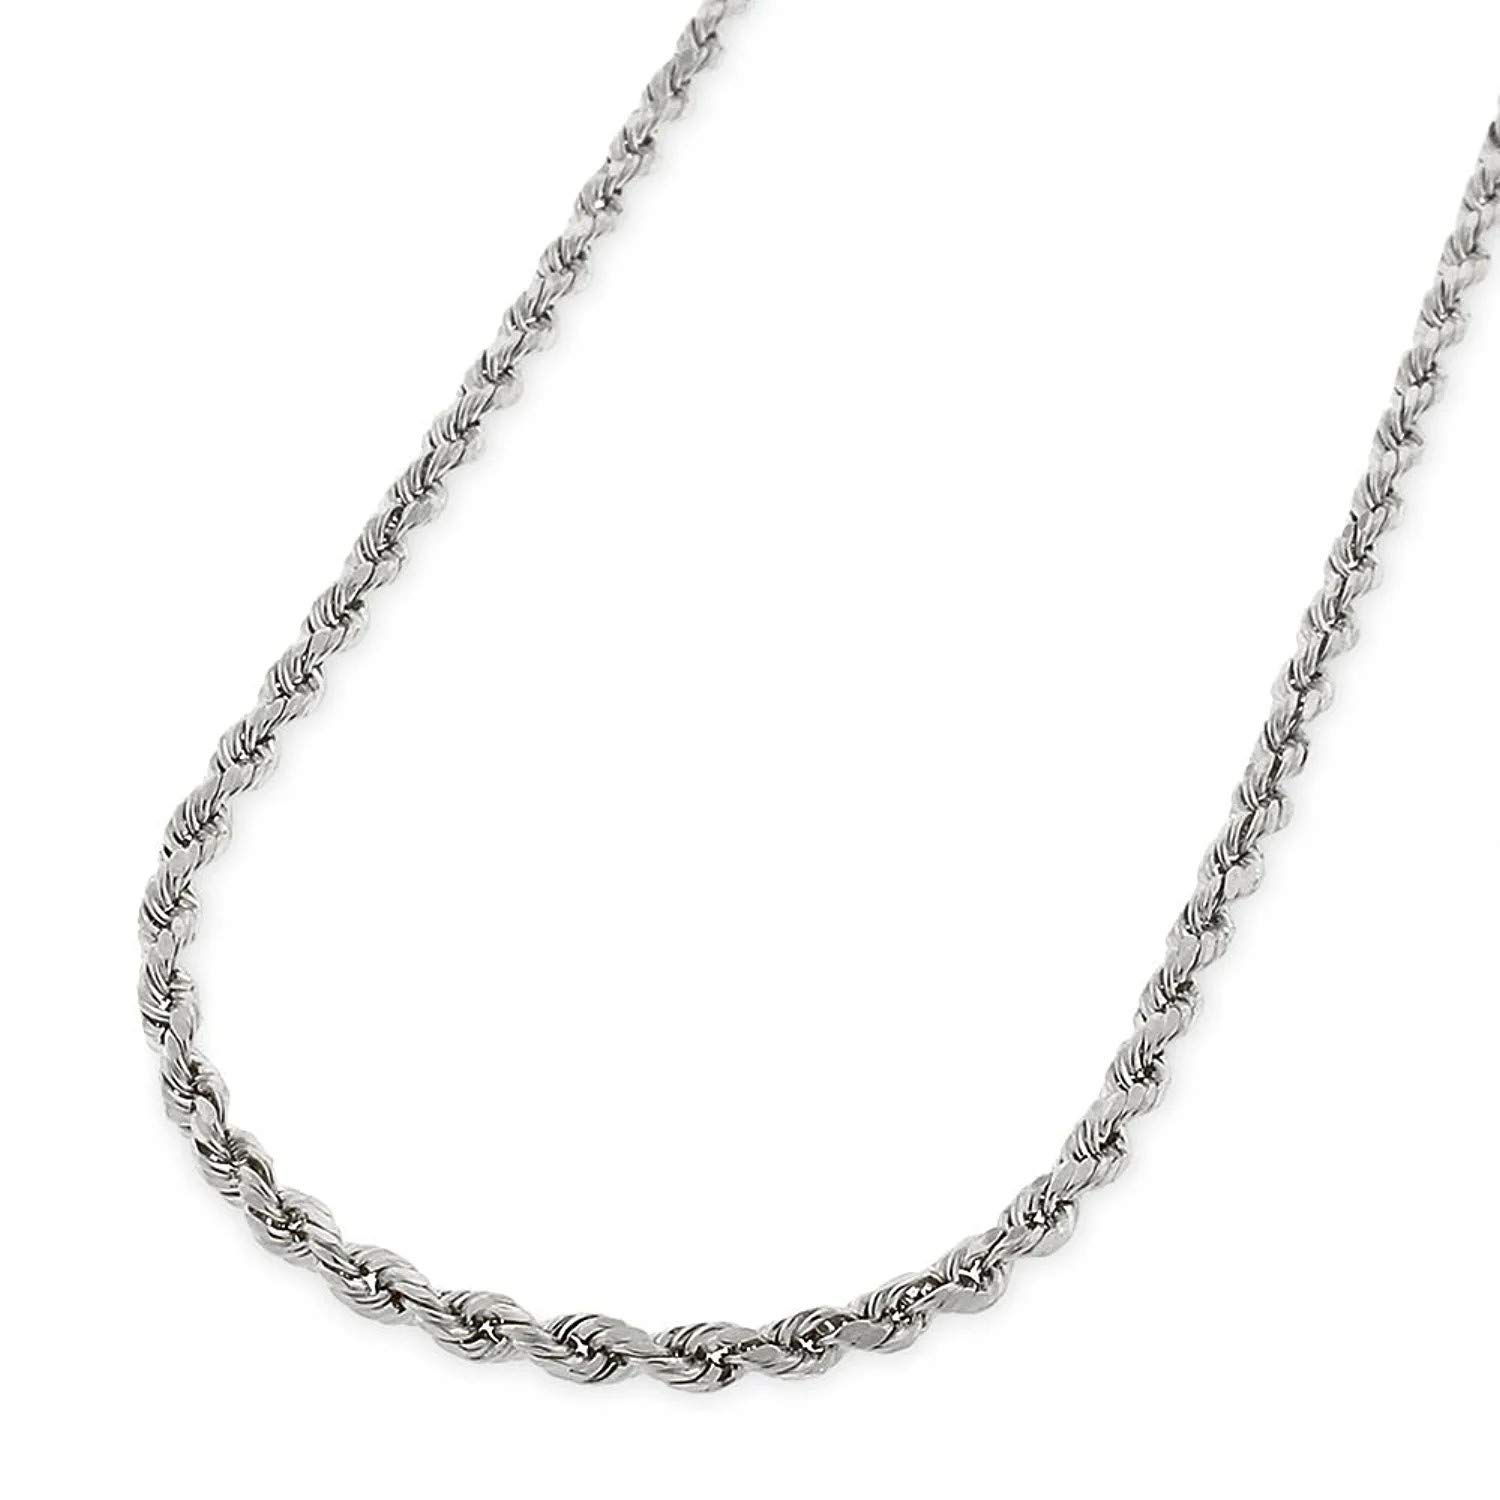 925 Gold Rope Chain 4MM 14K Gold Over Silver Rope Chain Necklace 925 Braided Twist Italian Necklace 3MM Verona Jewelers 925 Sterling Silver Diamond-Cut Rope Chain Necklace 2MM